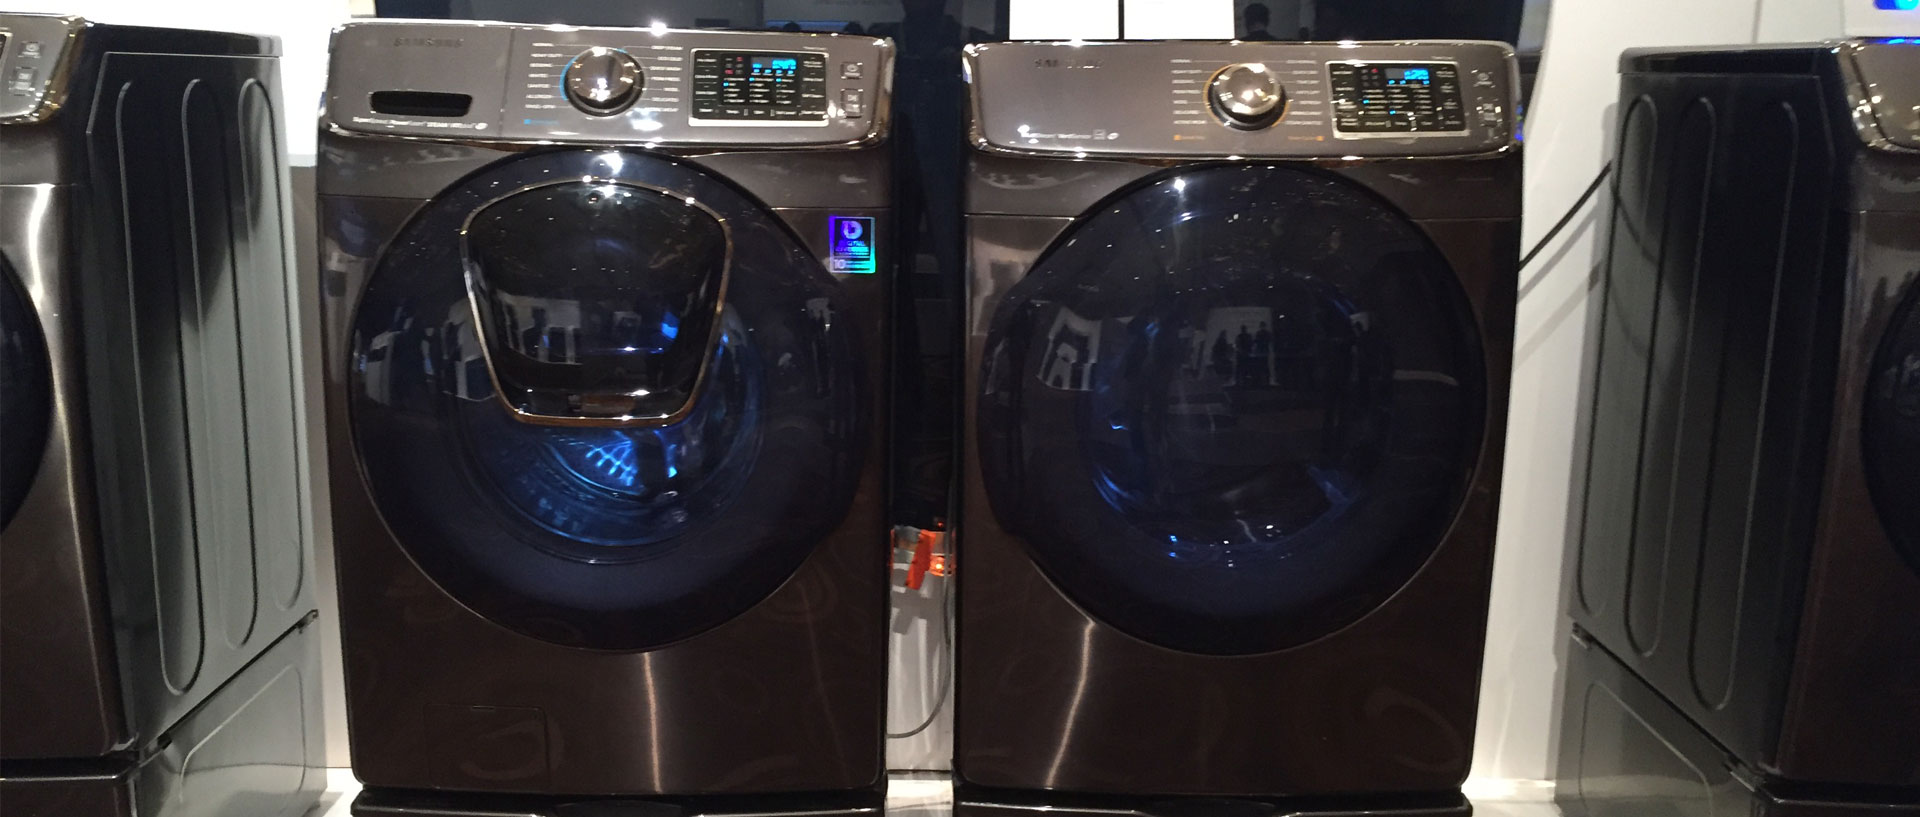 consumer reports washer dryer. Consumer Reports Washer Dryer C